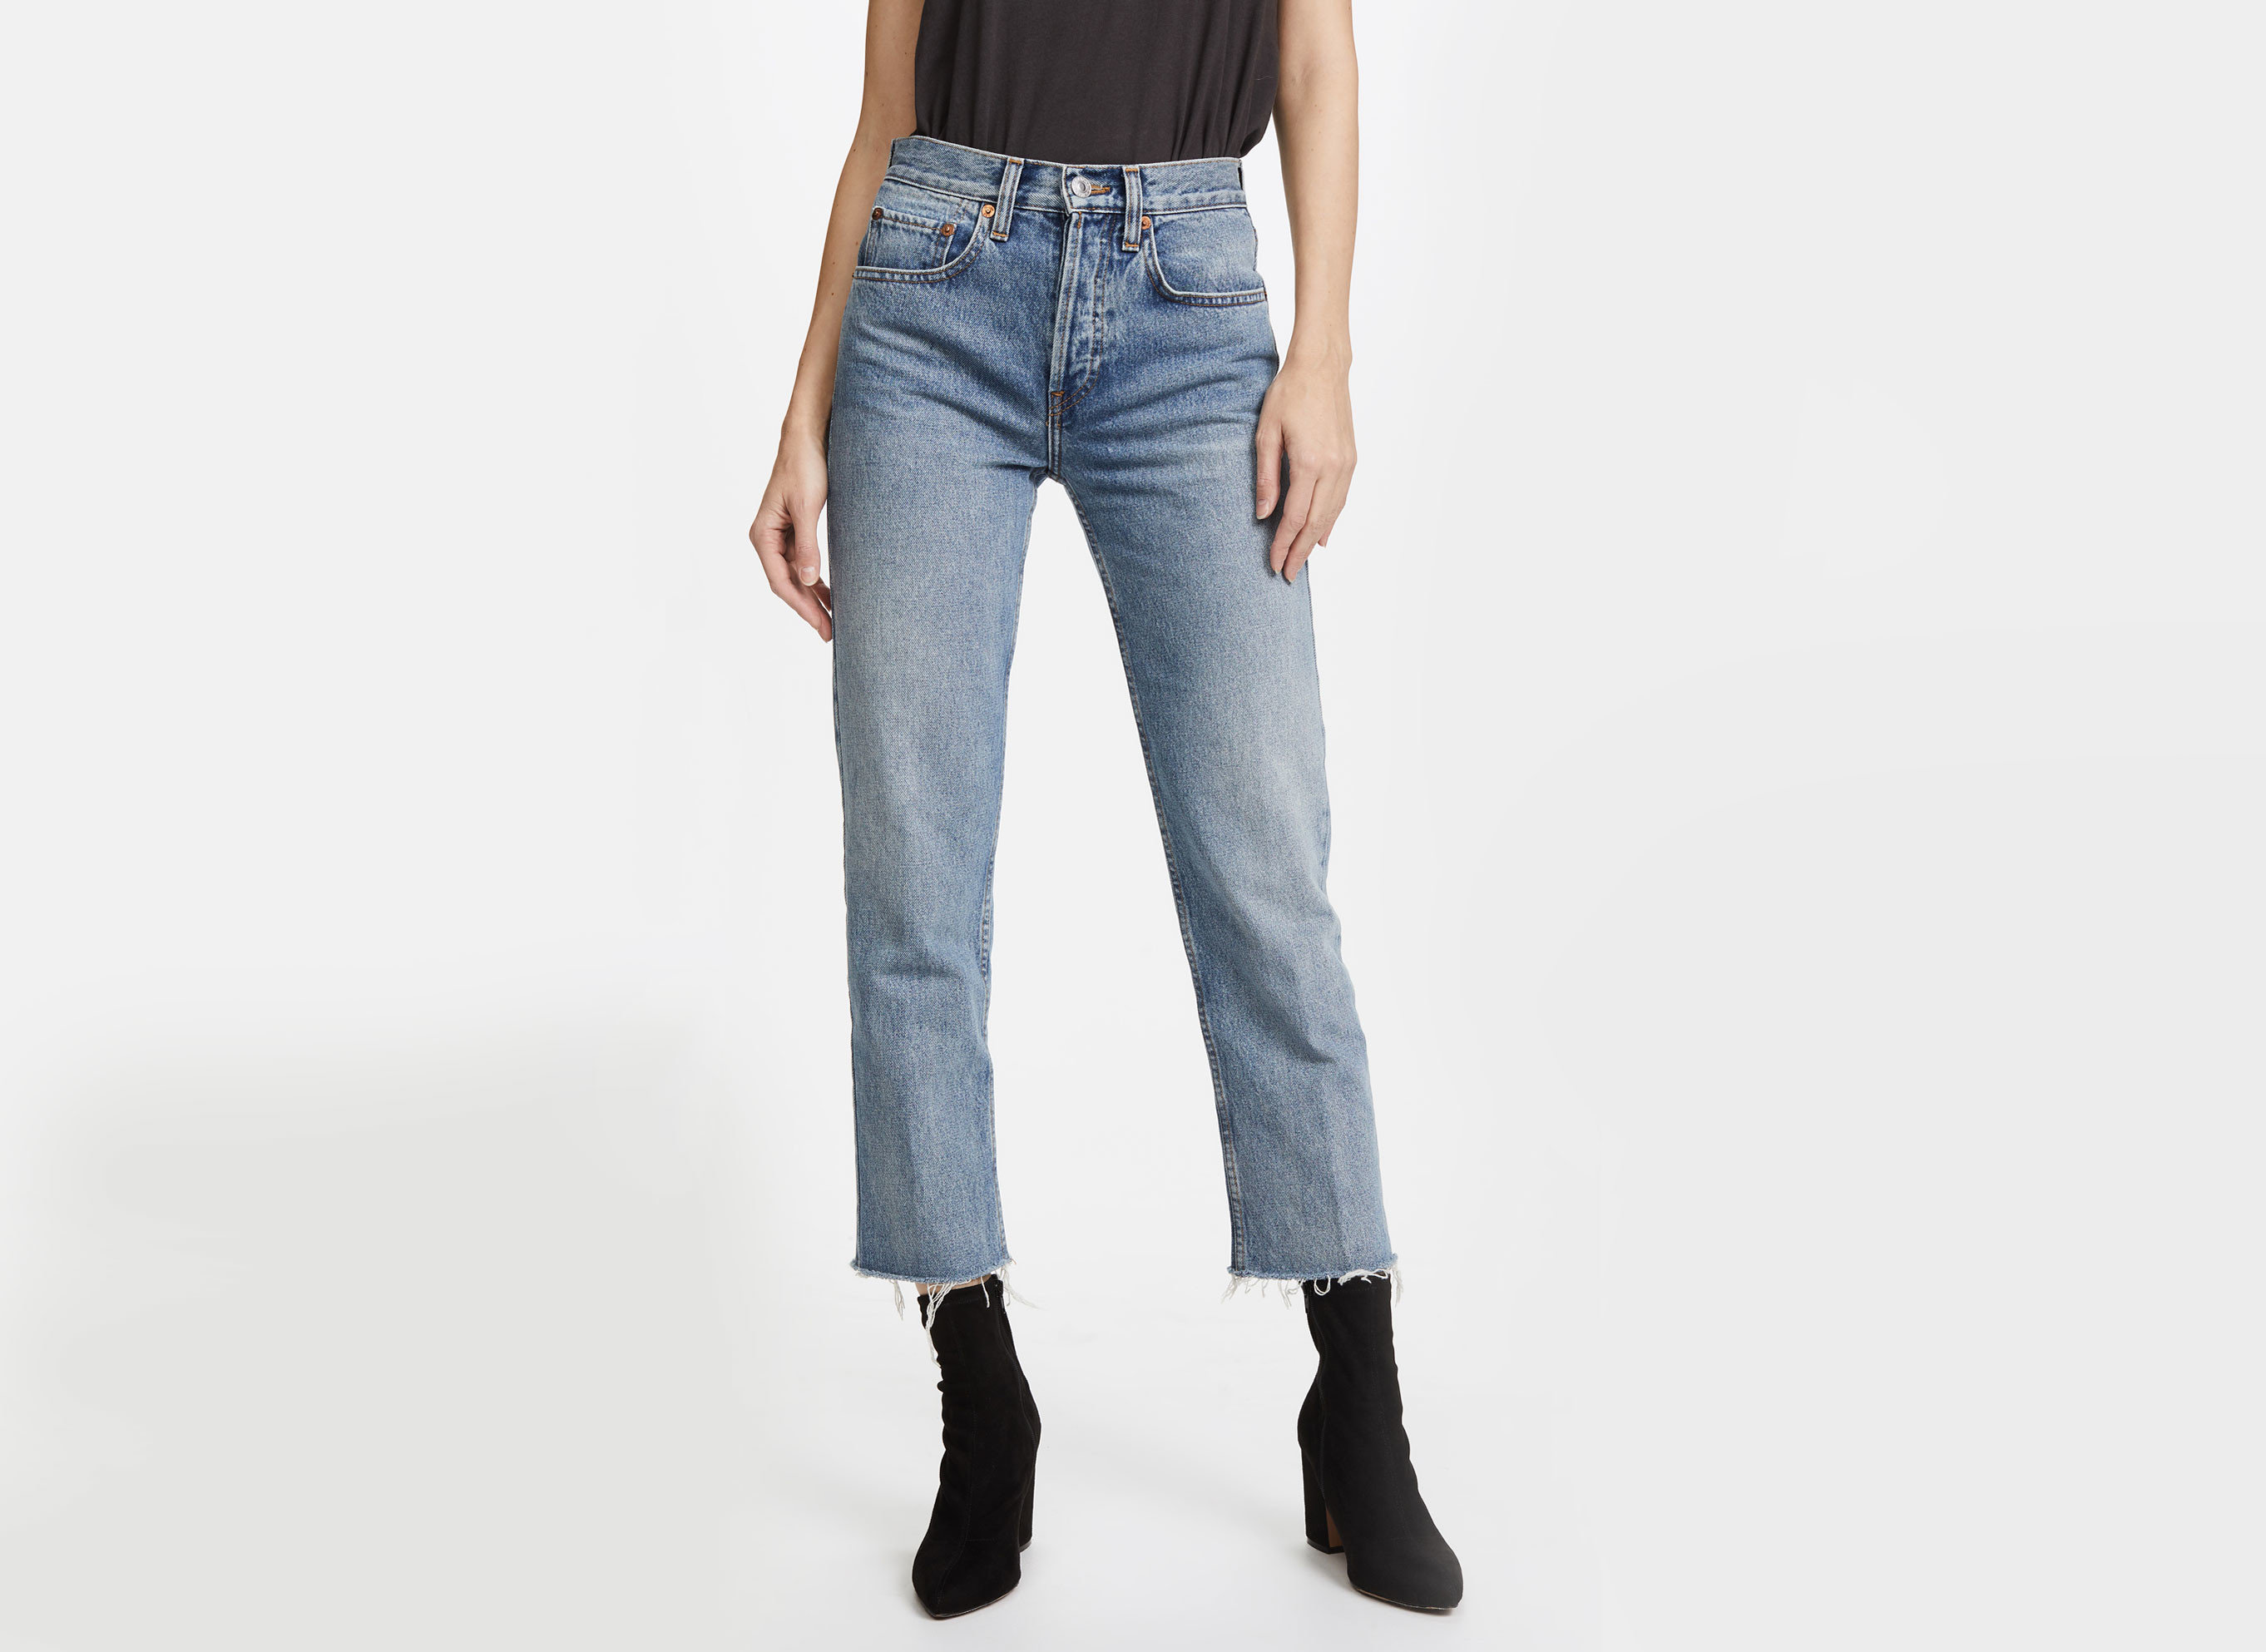 Travel Shop Travel Trends person jeans denim clothing wearing trouser trousers waist pocket posing